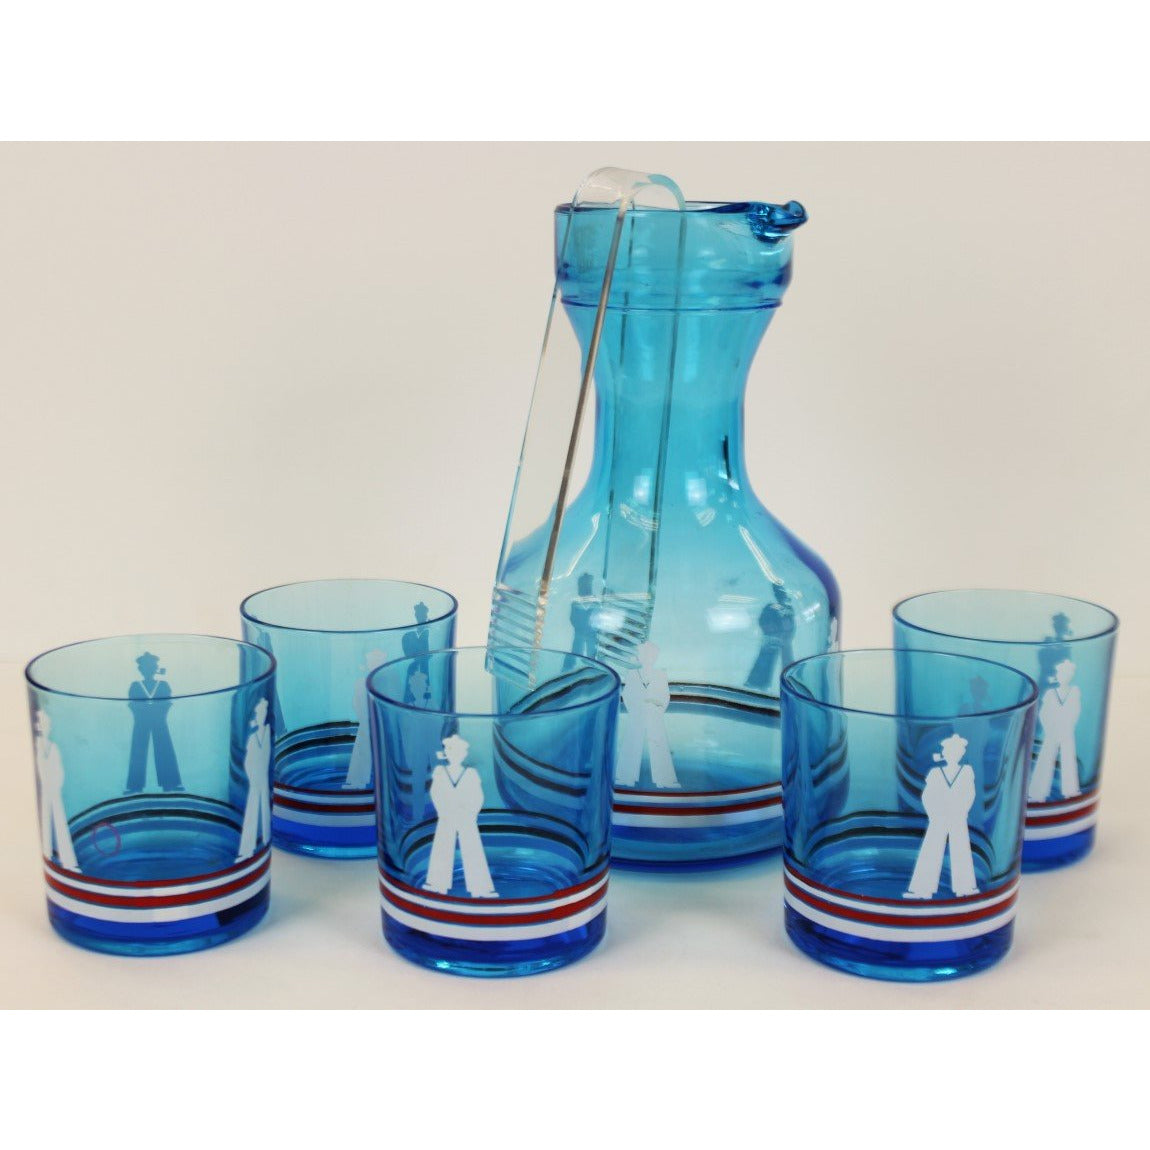 5 Sailor Old-Fashion Glasses w/ Decanter